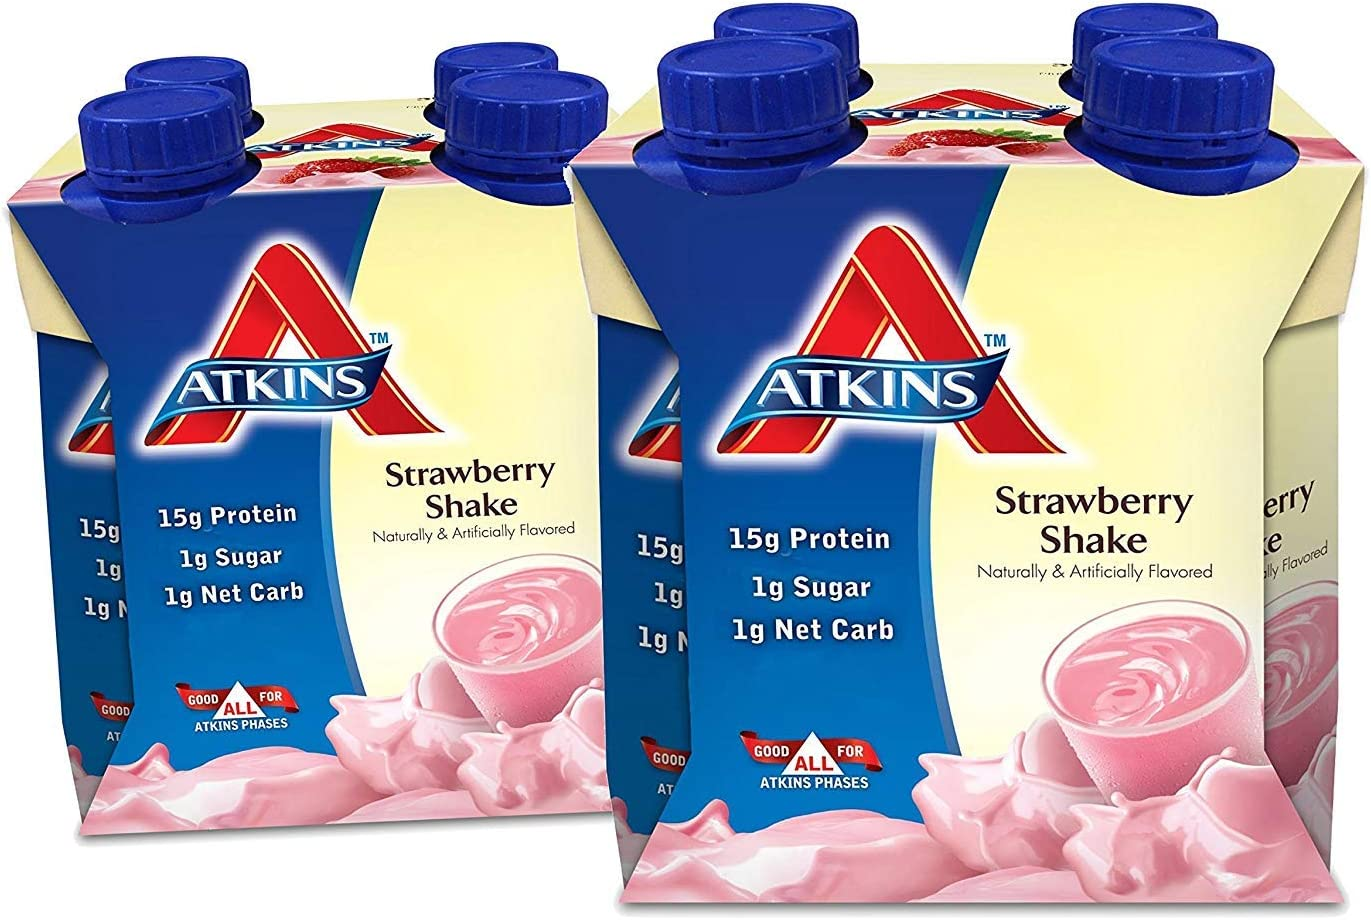 2 Pack Atkins Strawberry Dealing full price reduction Shake 4 per Quantity limited 11 Oz. Cont Count